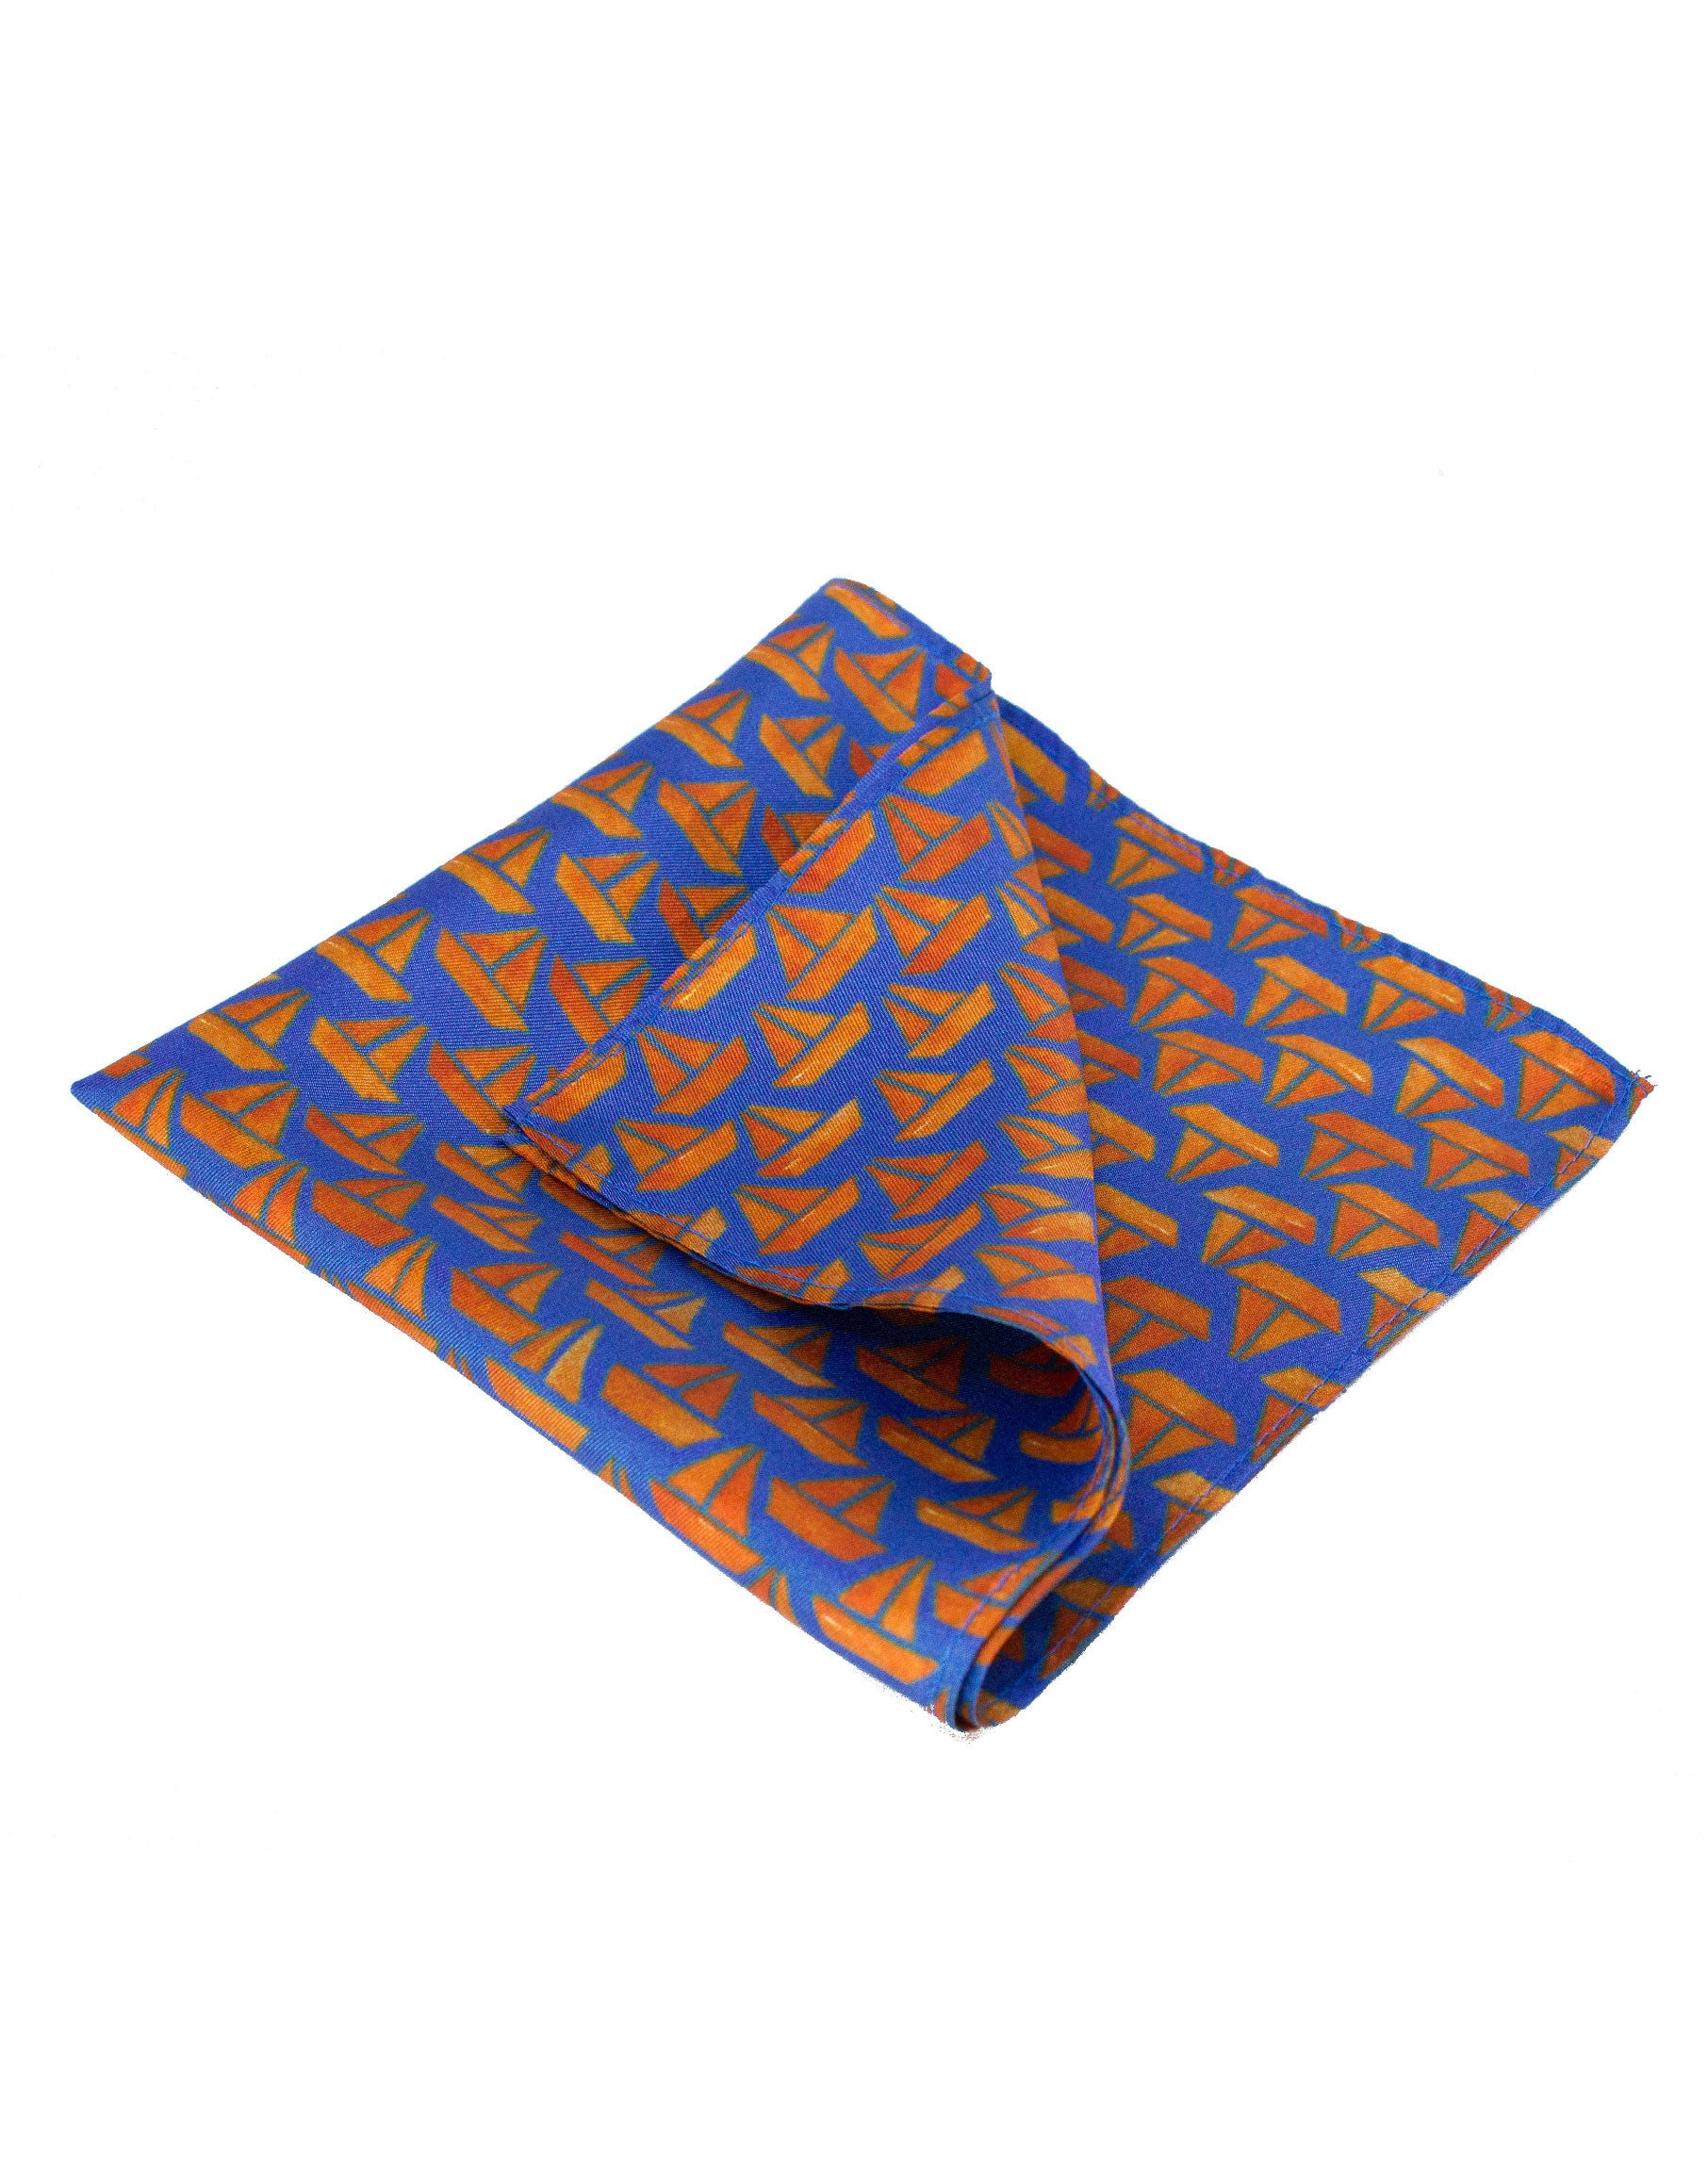 Sailboat silk pocket square